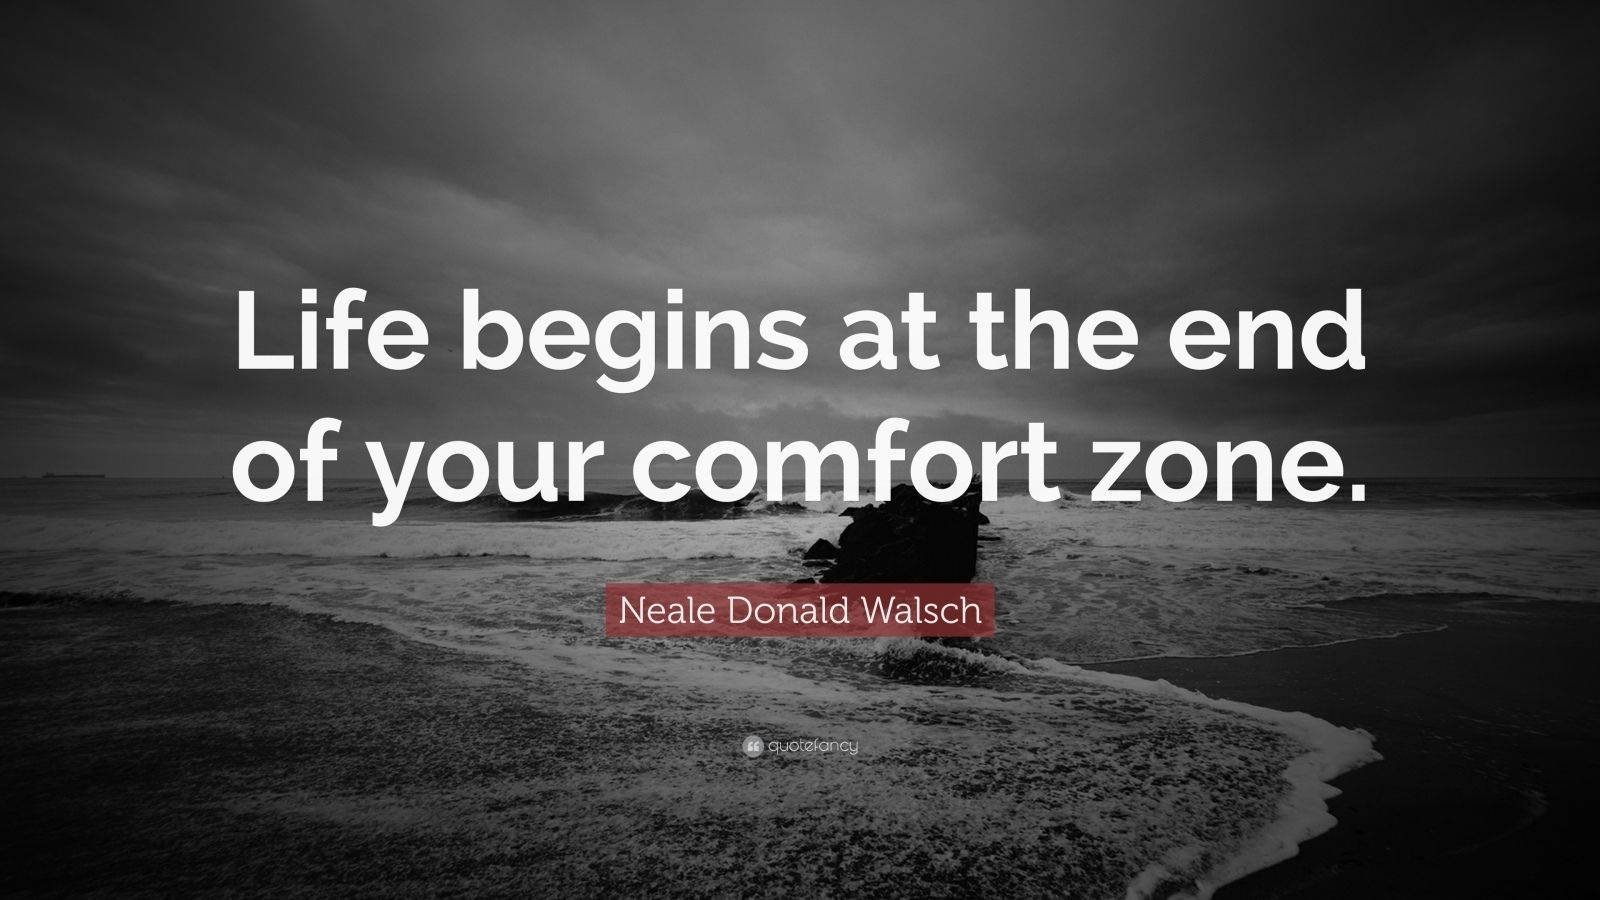 Inspirational Quotes On Life Neale Donald Walsch Quotes 100 Wallpapers  Quotefancy